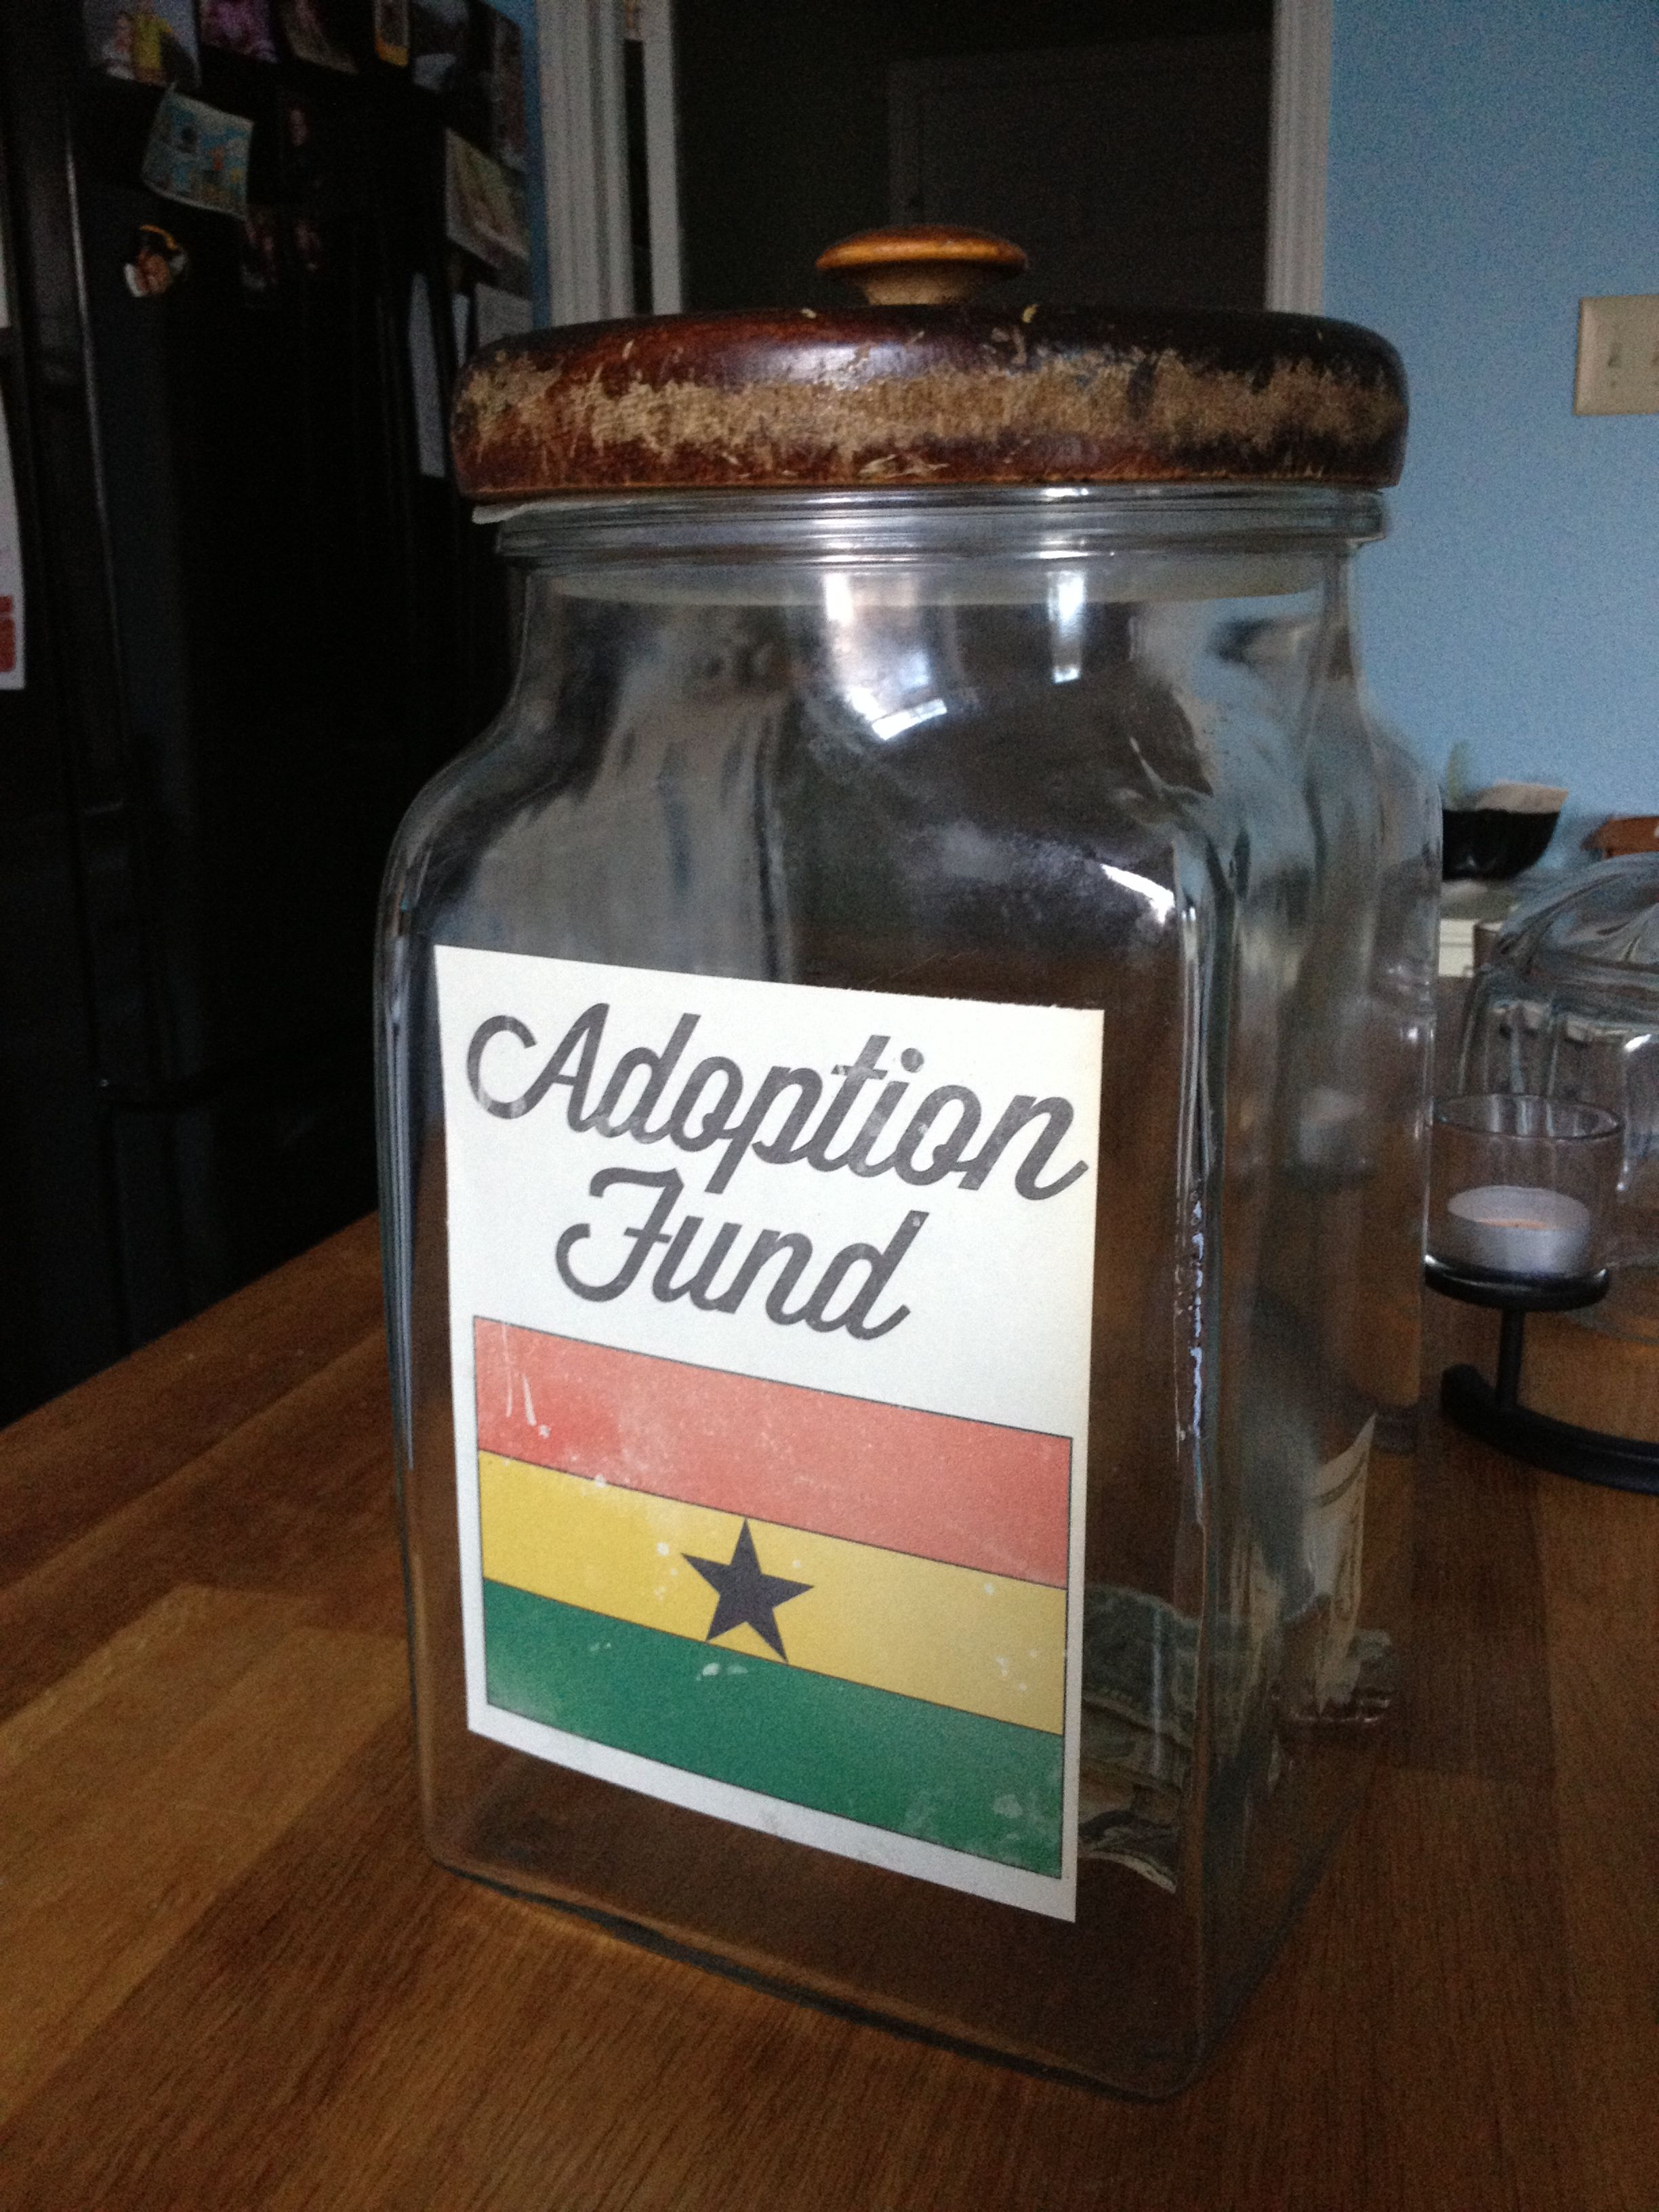 *FOR ERIN!*Adoption fund jar made from an antique cookie